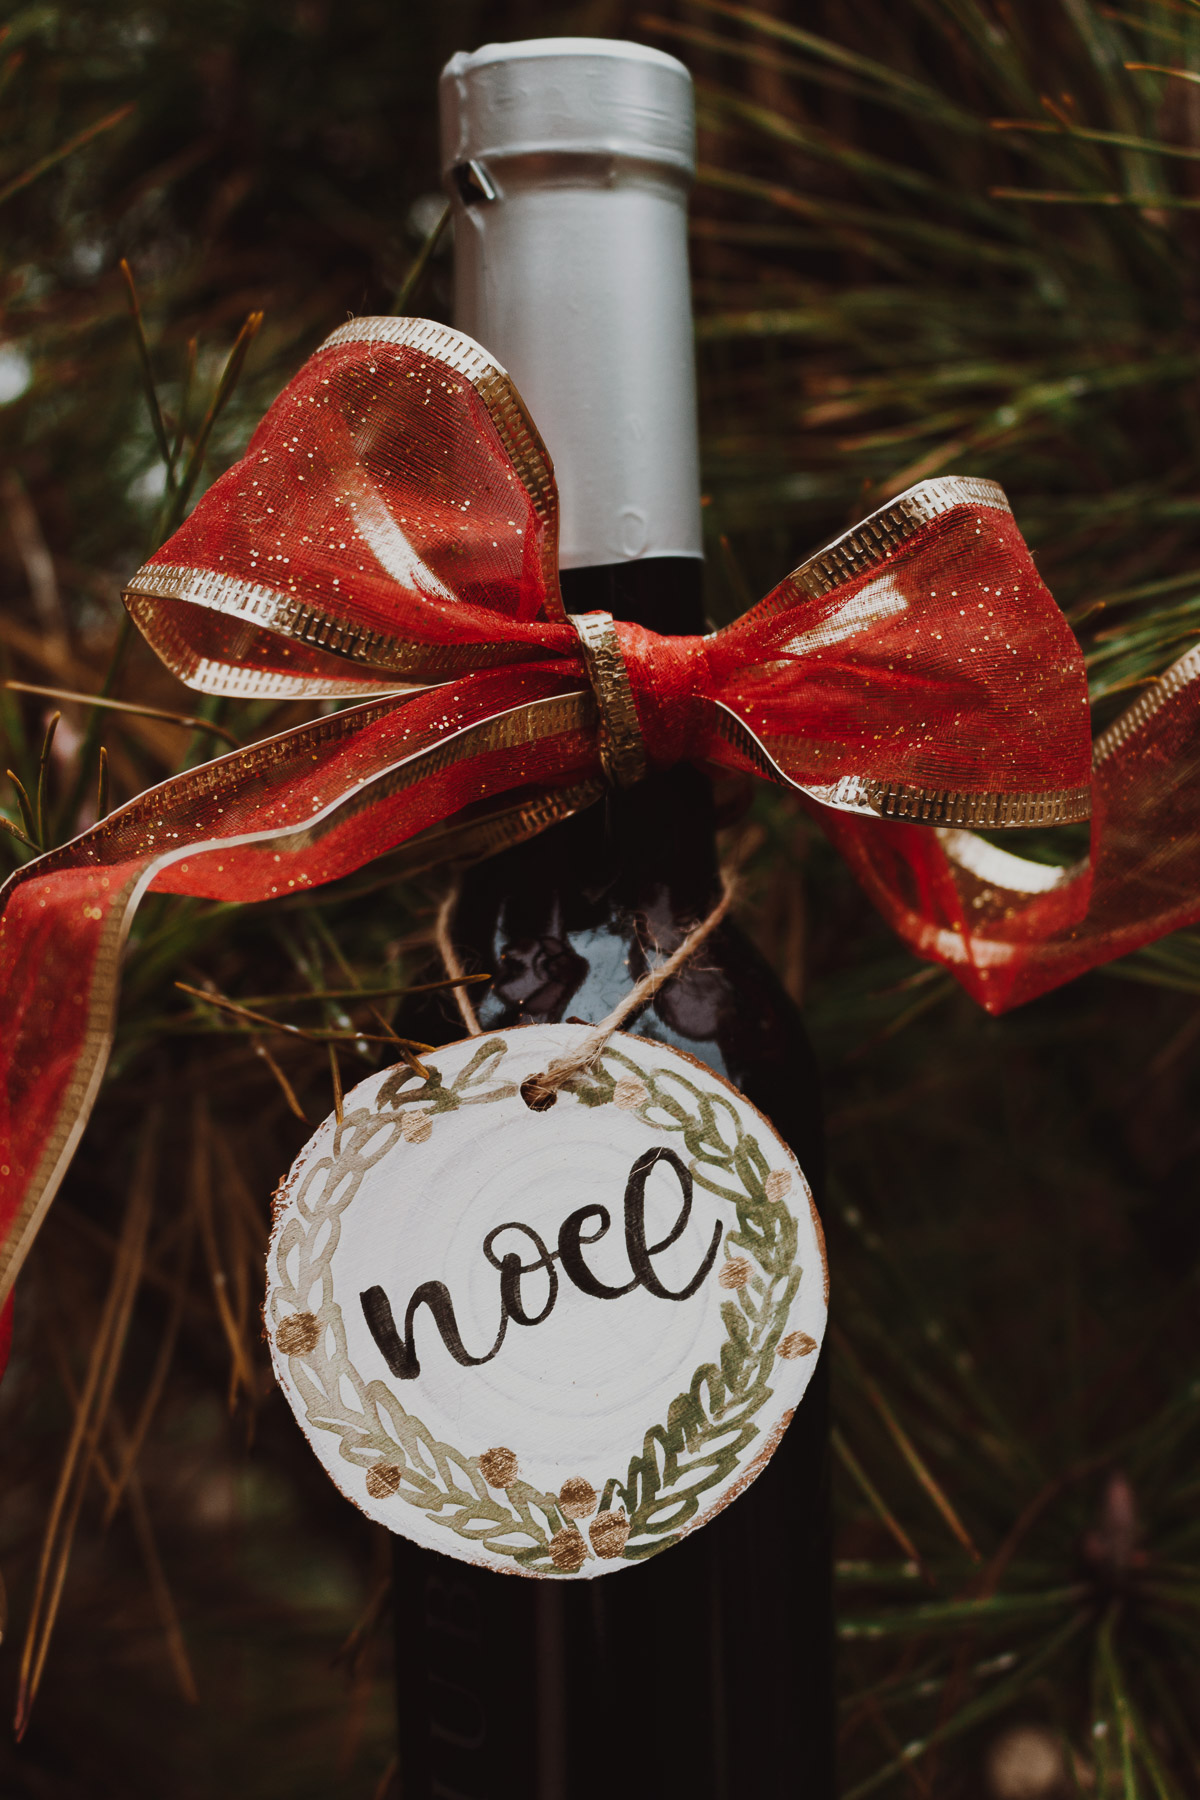 Thank your hostess - Ornament sizes add that extra touch to wine or bottled gifts-- great for hostess gifts!